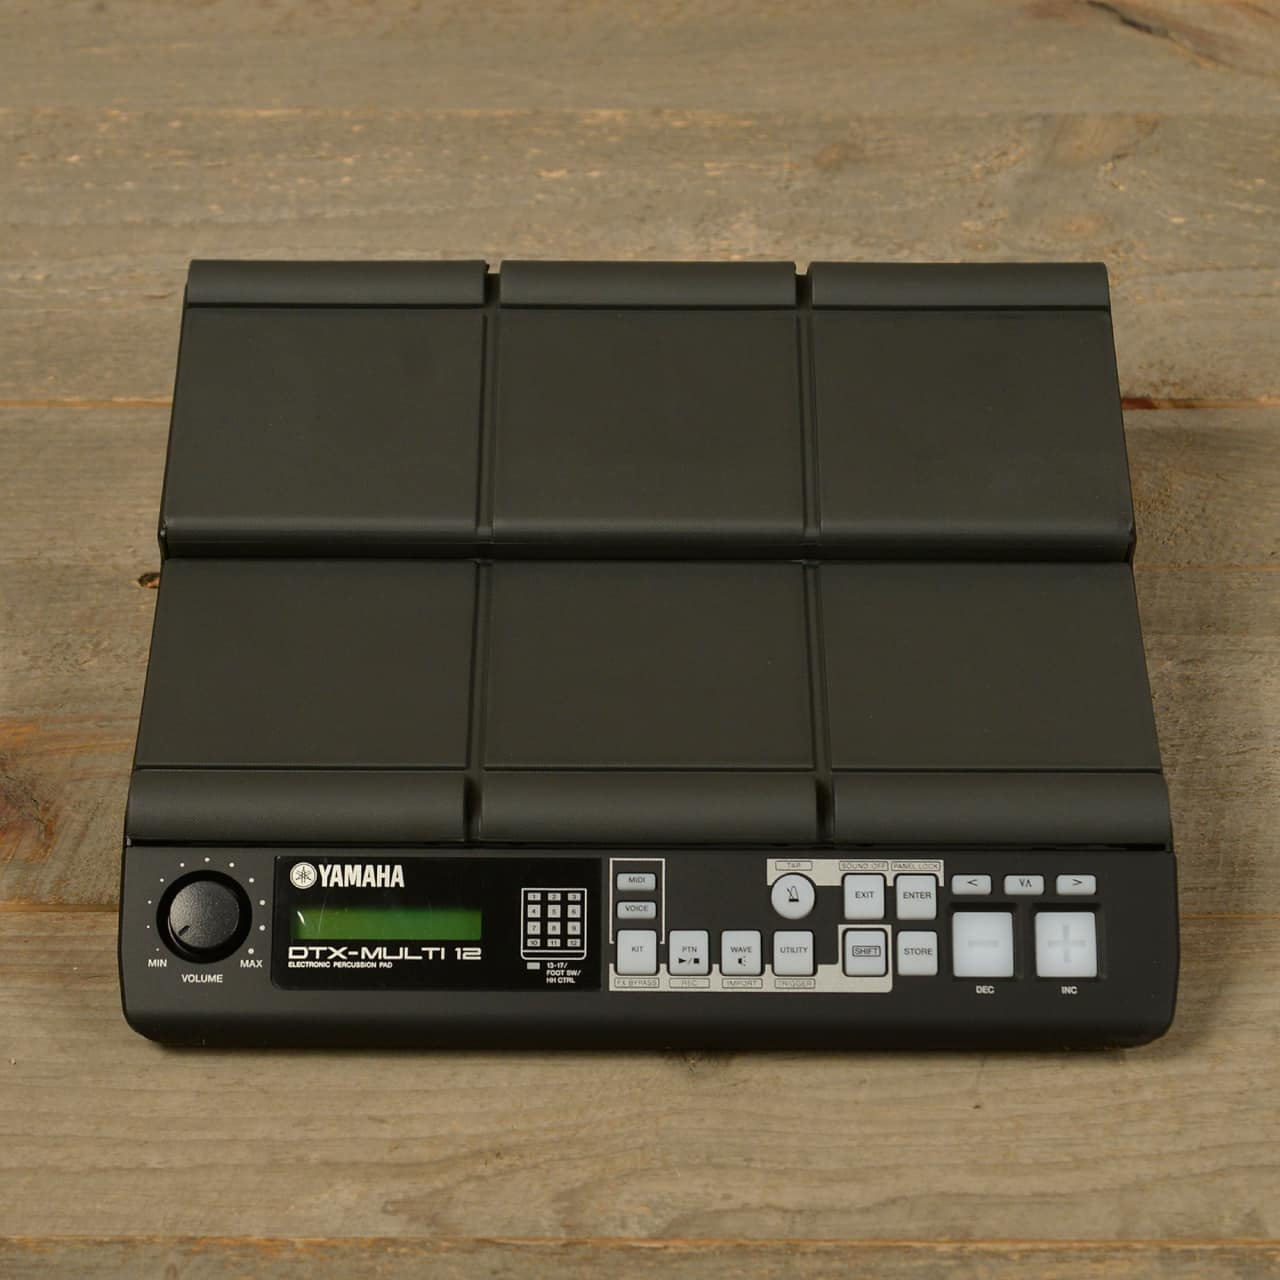 Yamaha dtx multi 12 electronic percussion multi pad mint for Yamaha dtx review